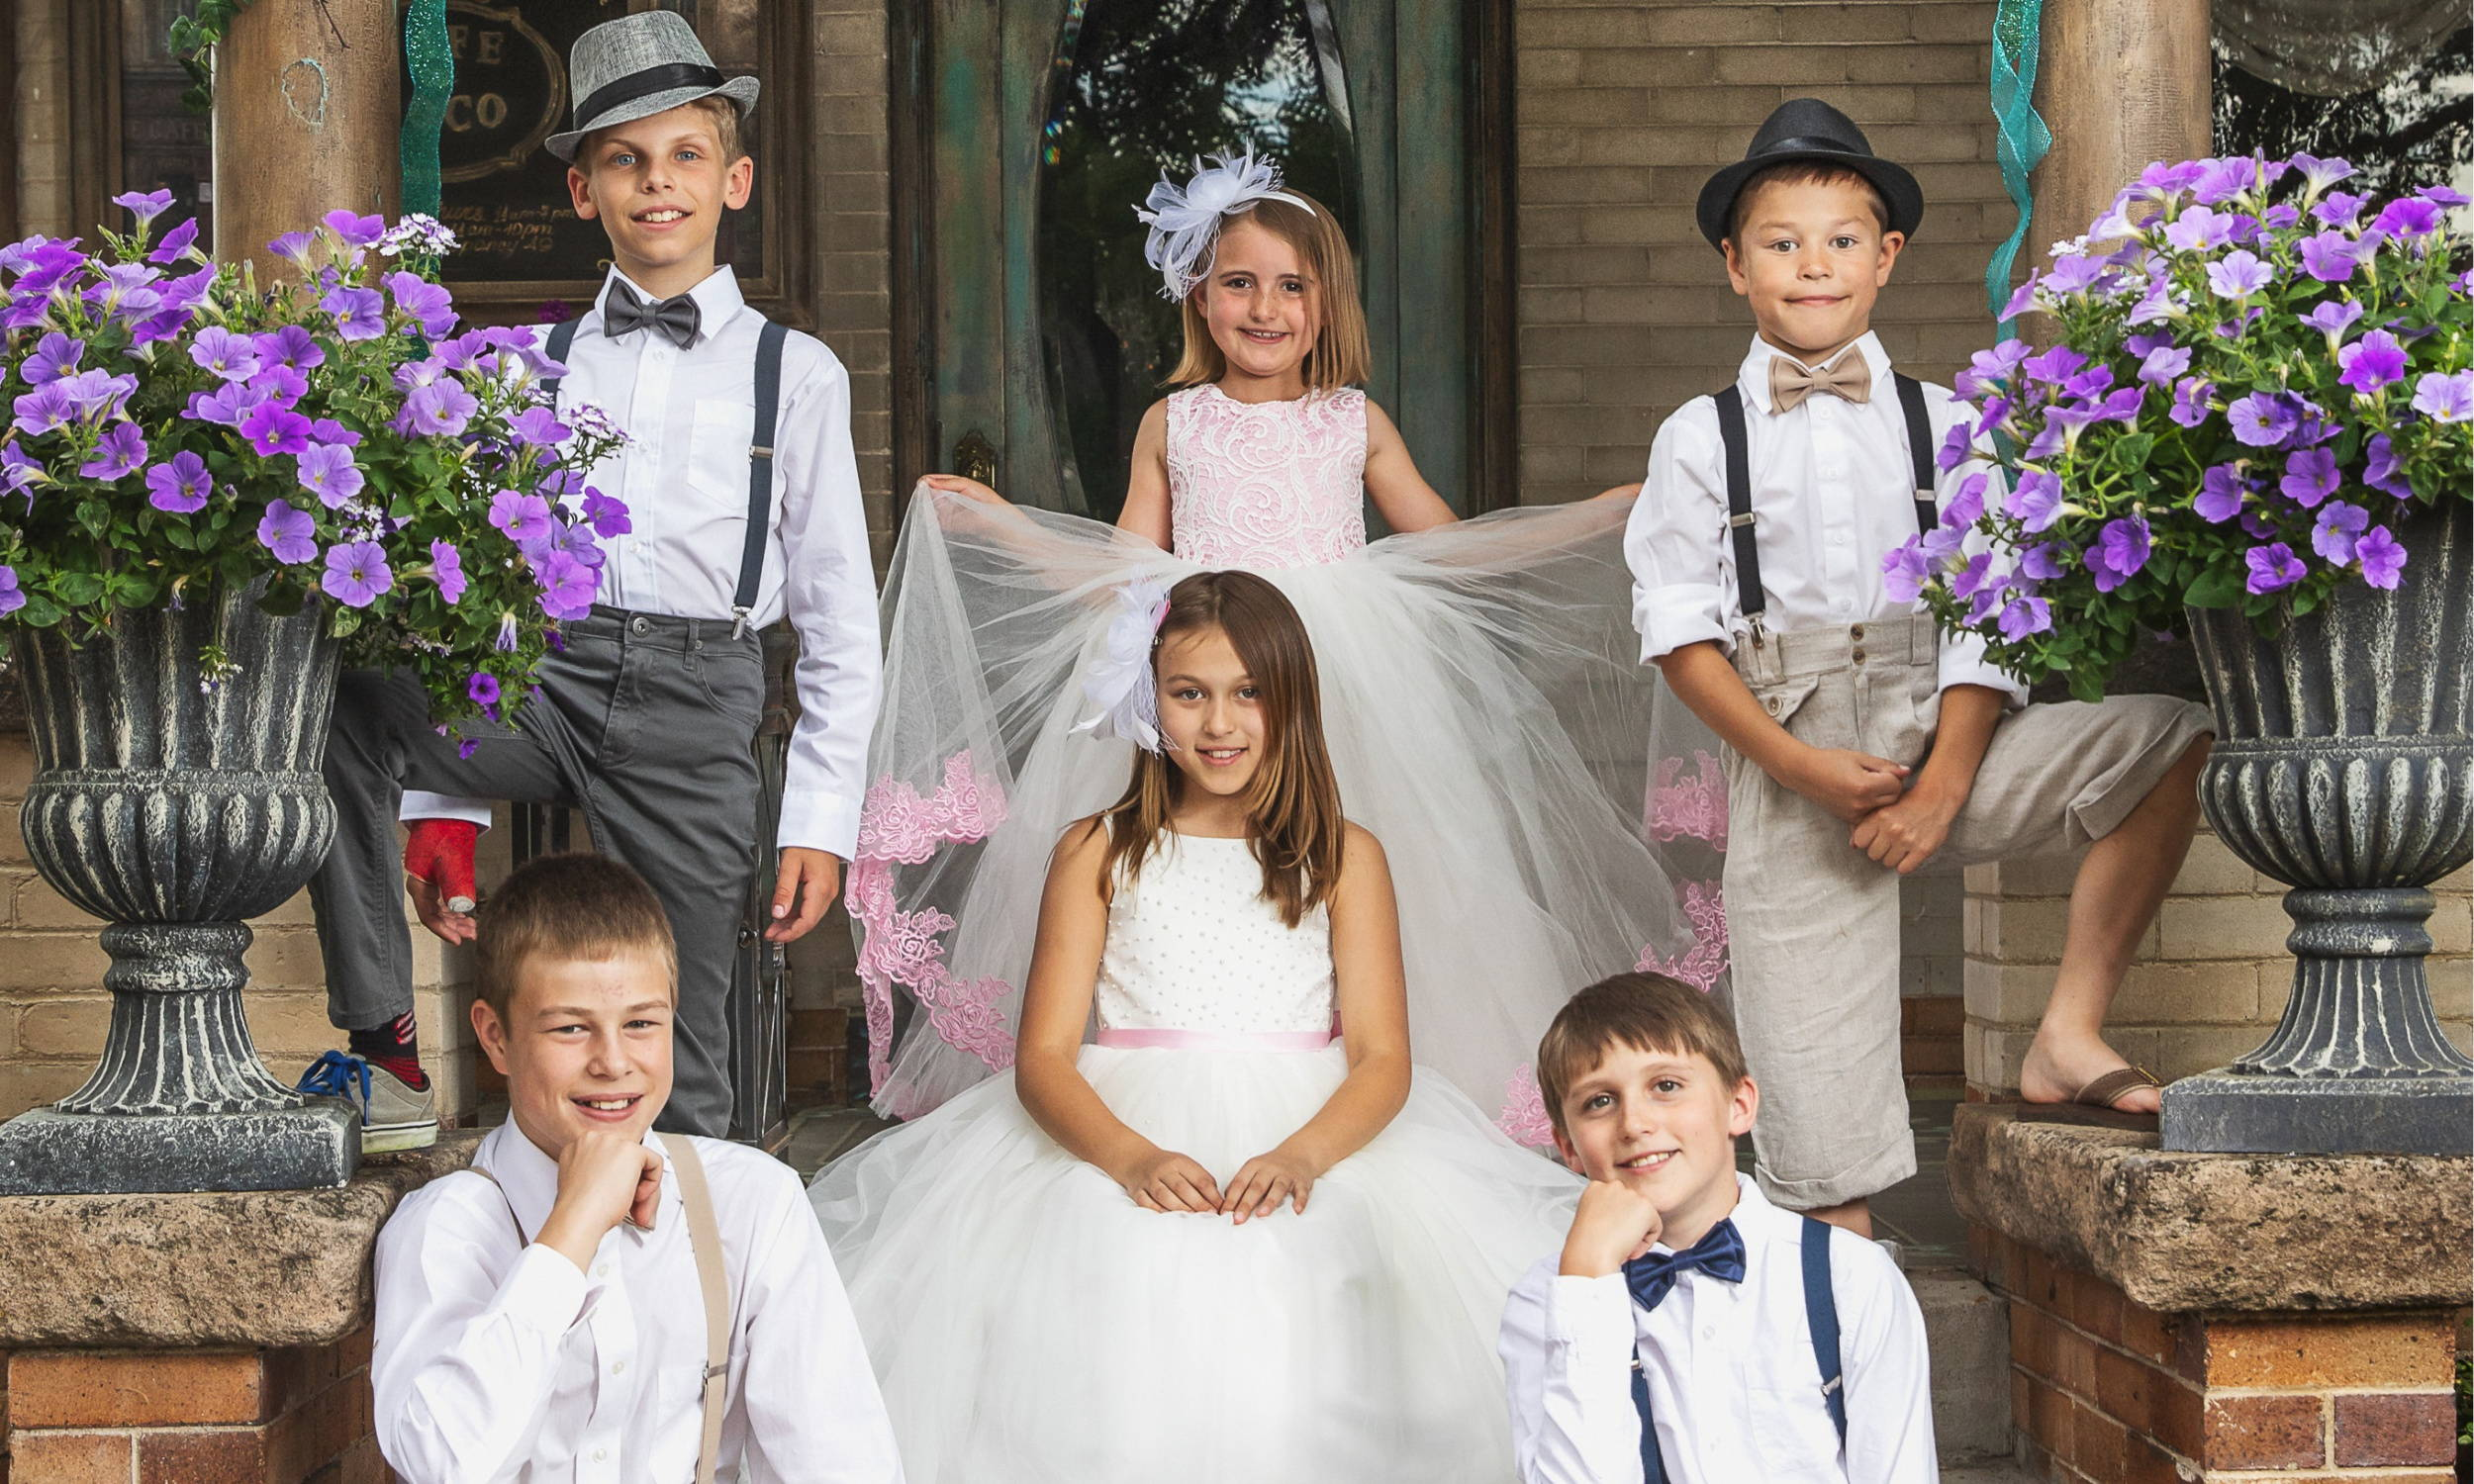 Ring Bearers & Flower Girls in a Wedding